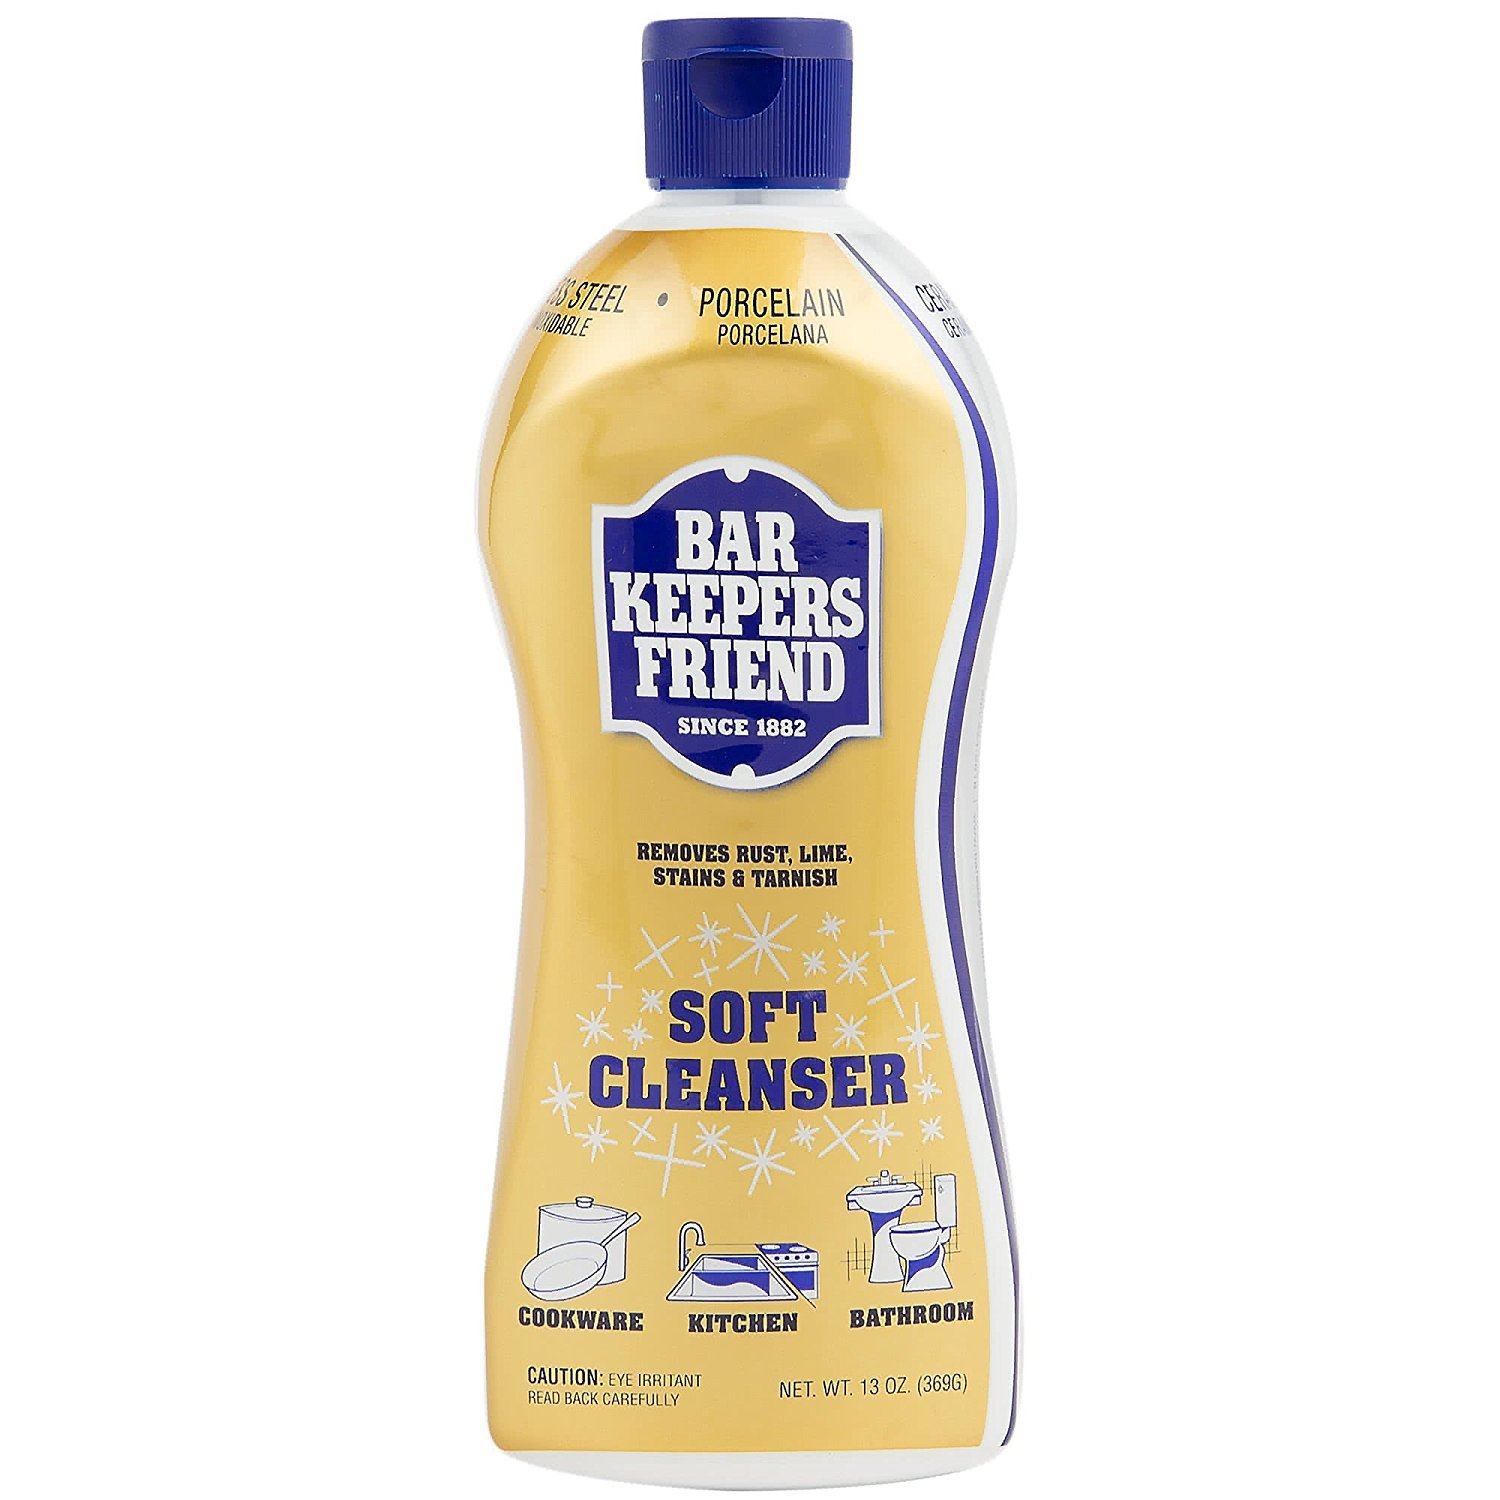 Bar Keepers Friend Soft Cleanser Premixed Formula